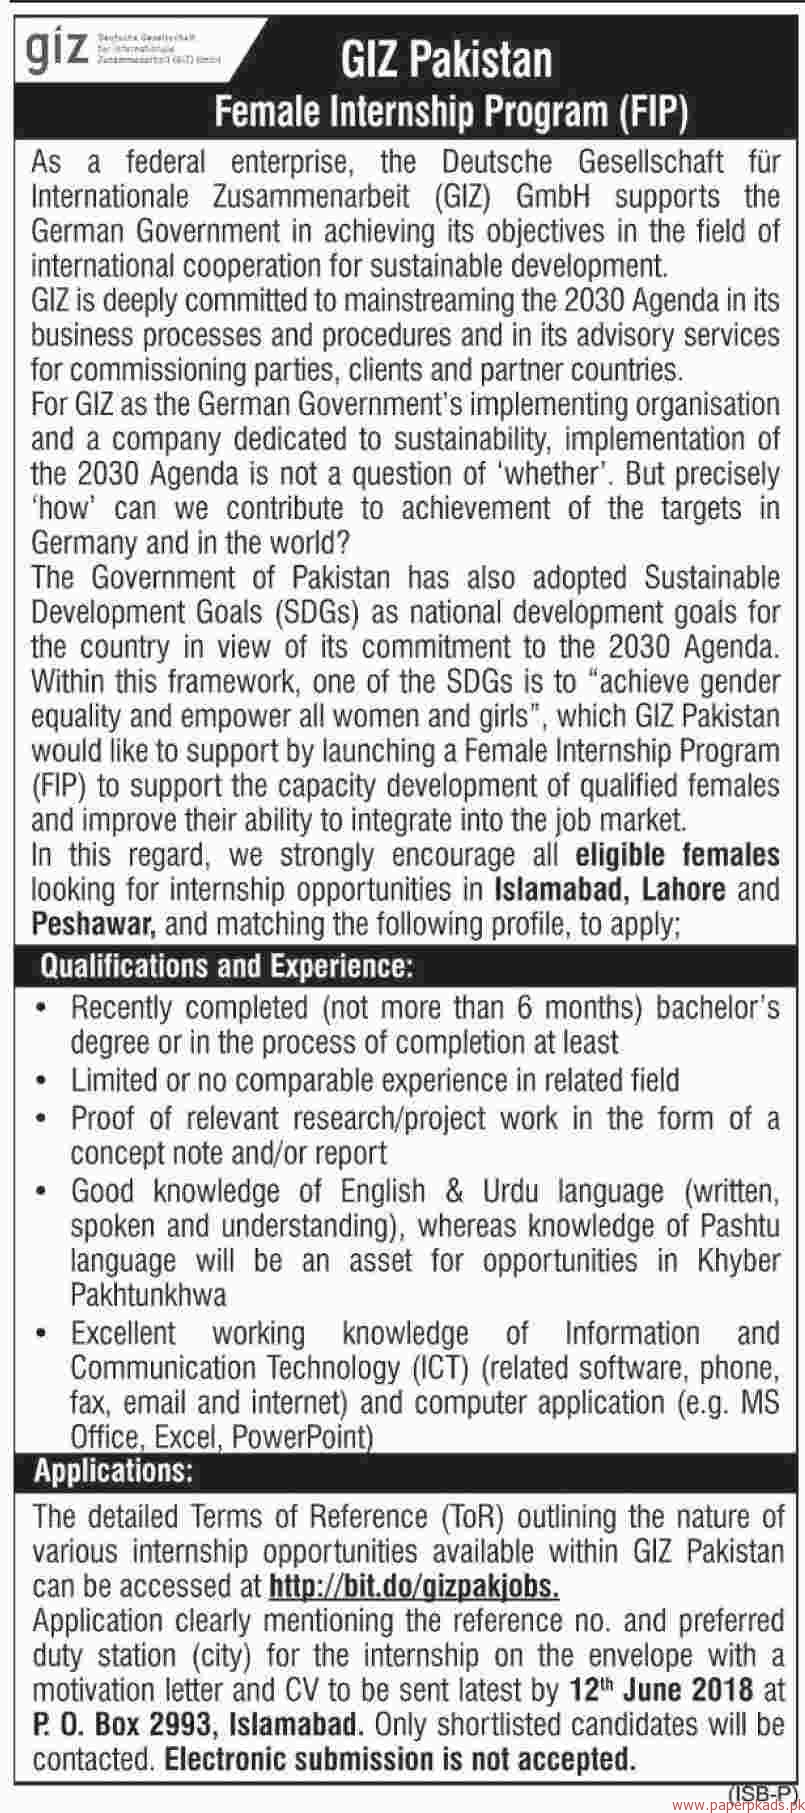 GIZ Pakistan Female Internship Program FIP Jobs 2018